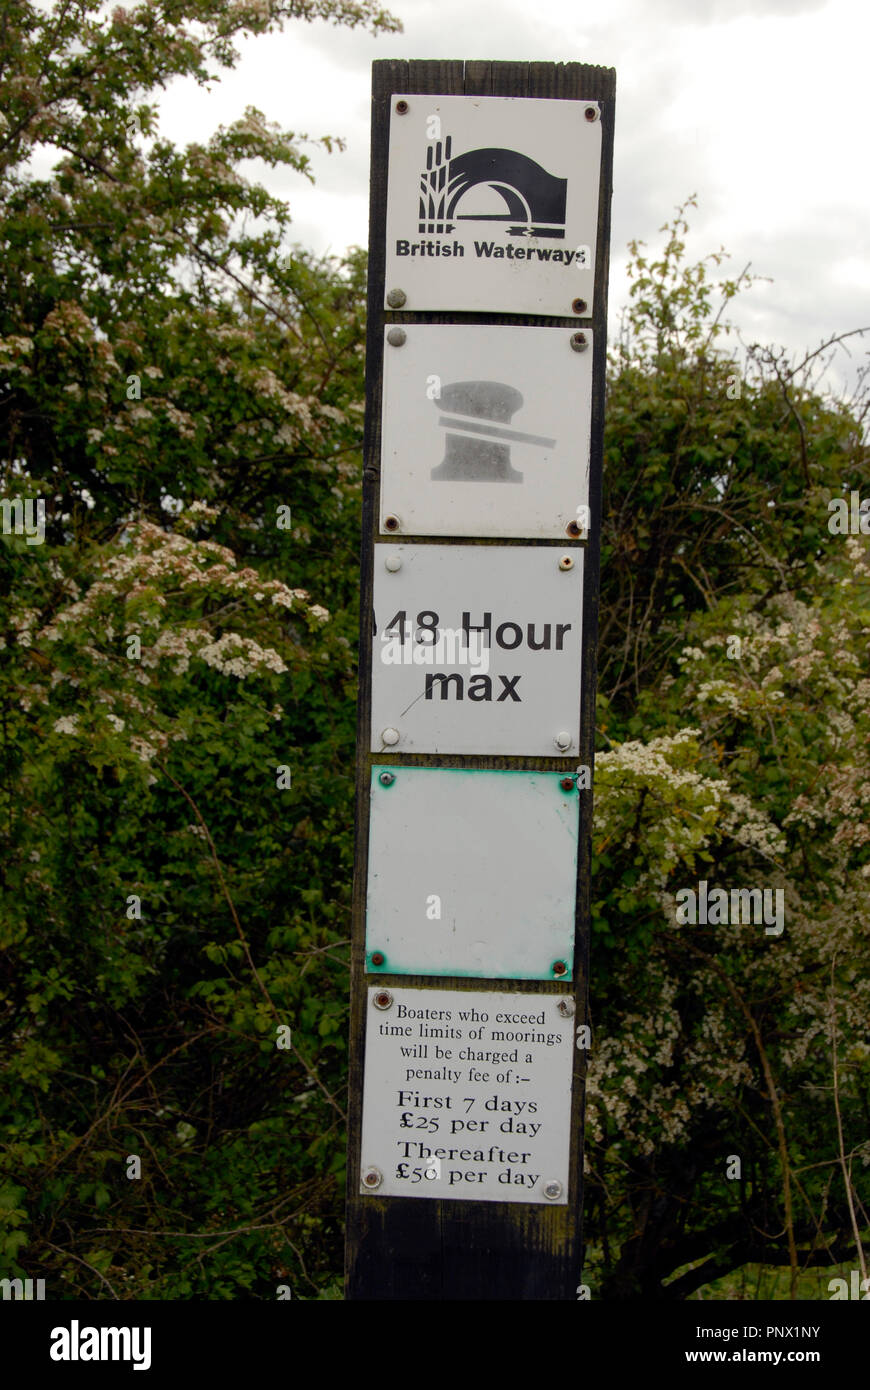 Sign by Kennet & Avon canal showing mooring time limits and penalties for overstaying - Stock Image